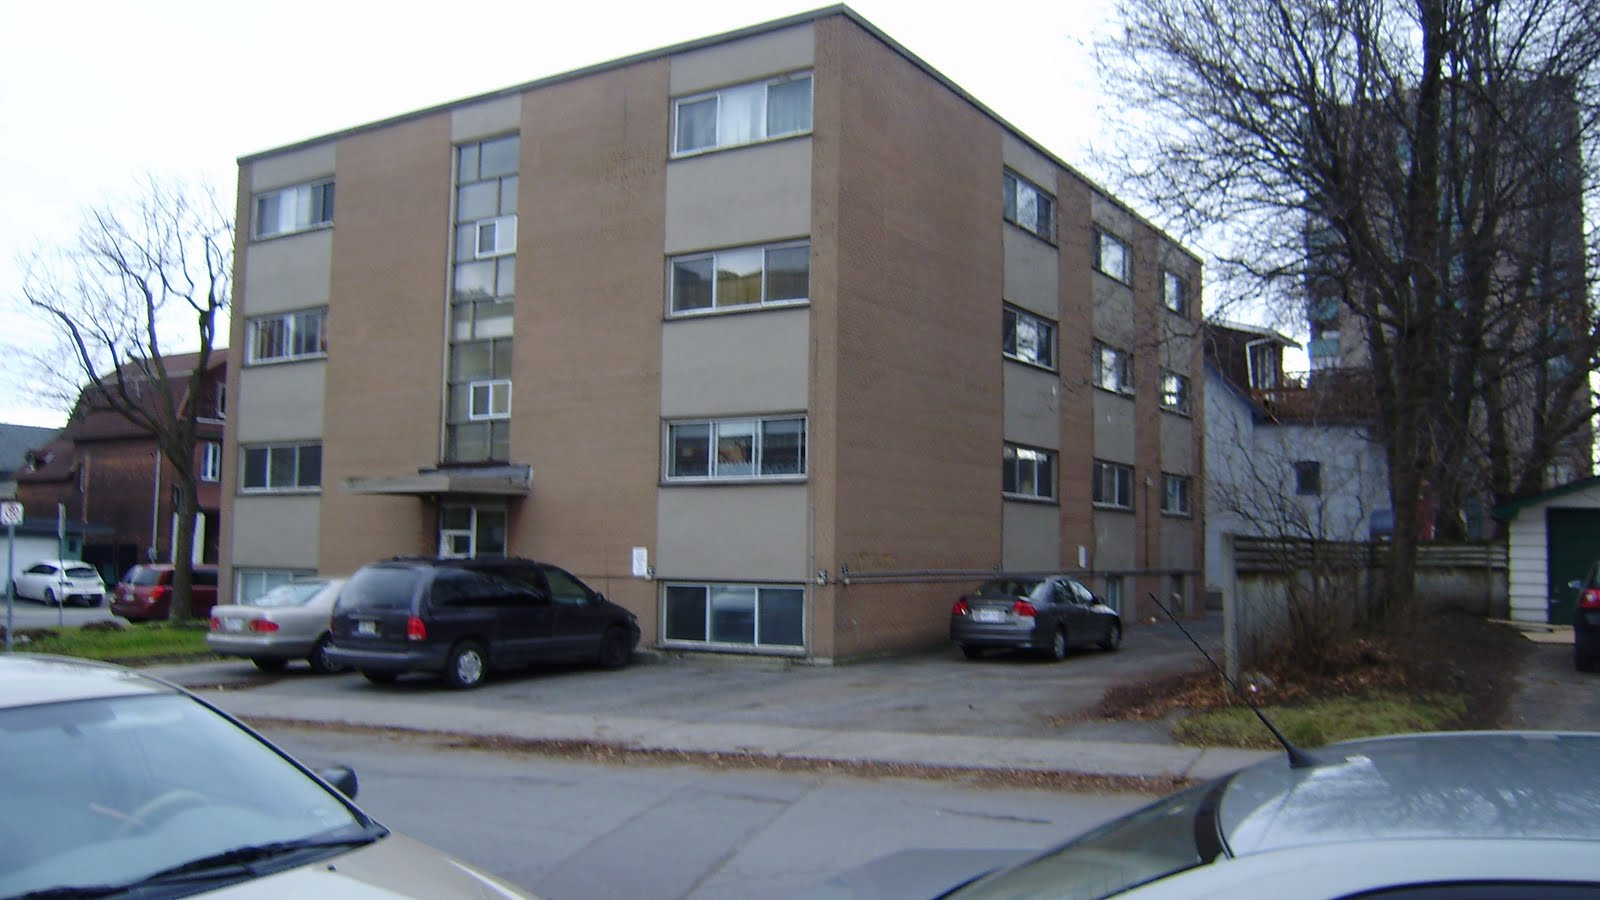 West side action ccoc expands for 8 unit apartment building for sale